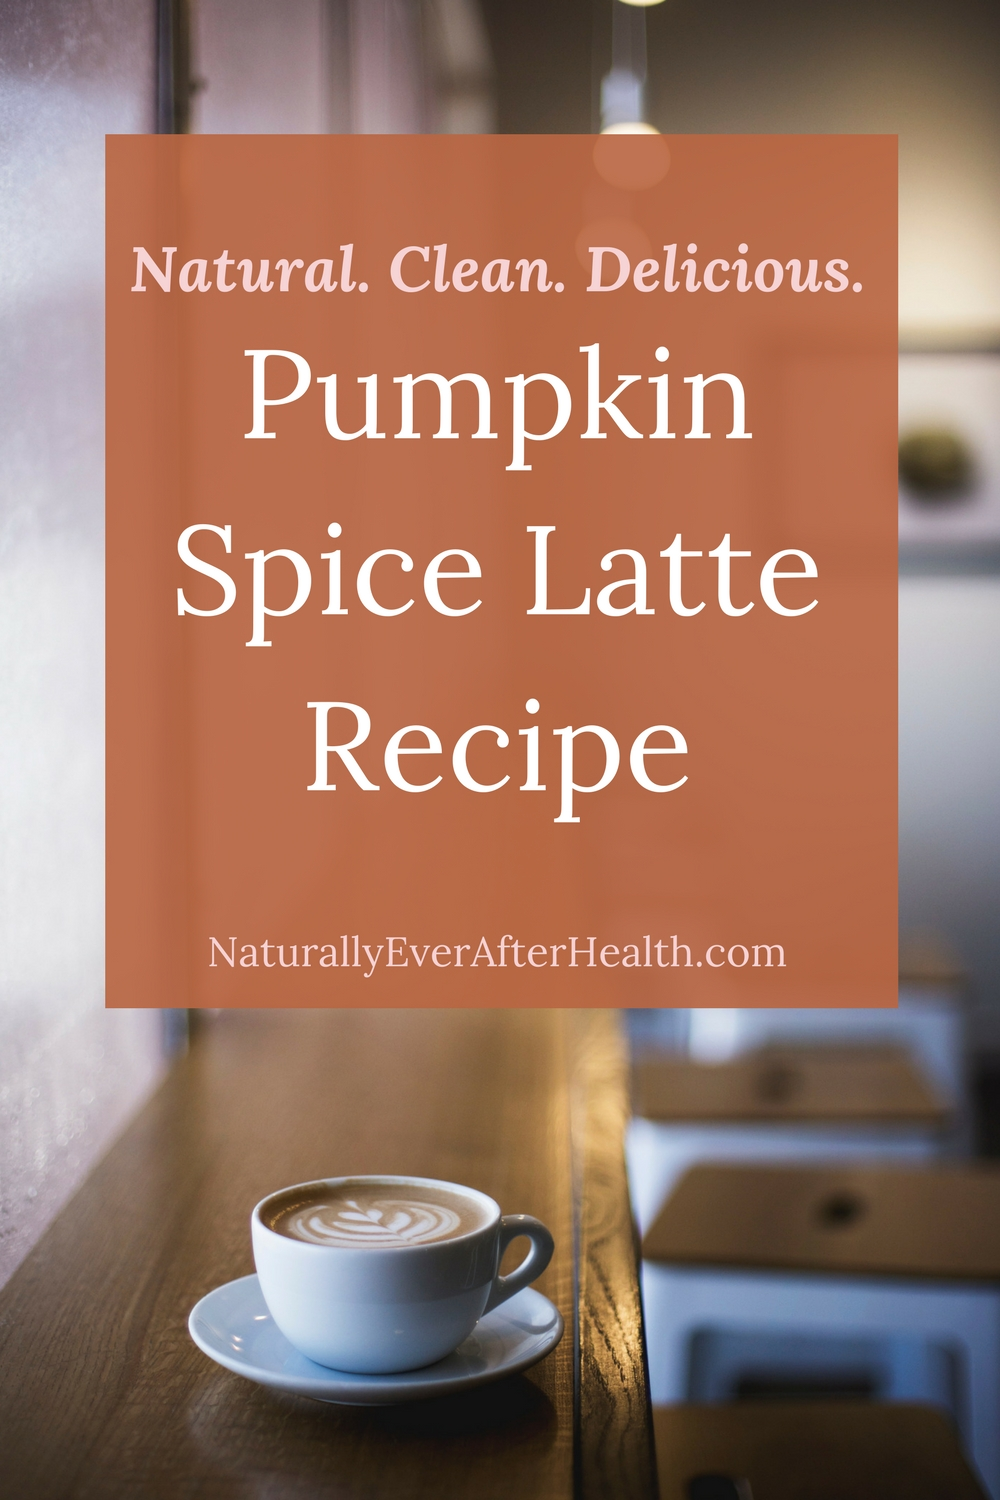 Want the classic fall drink without artificial ingredients? Check out this natural pumpkin spice latte recipe!